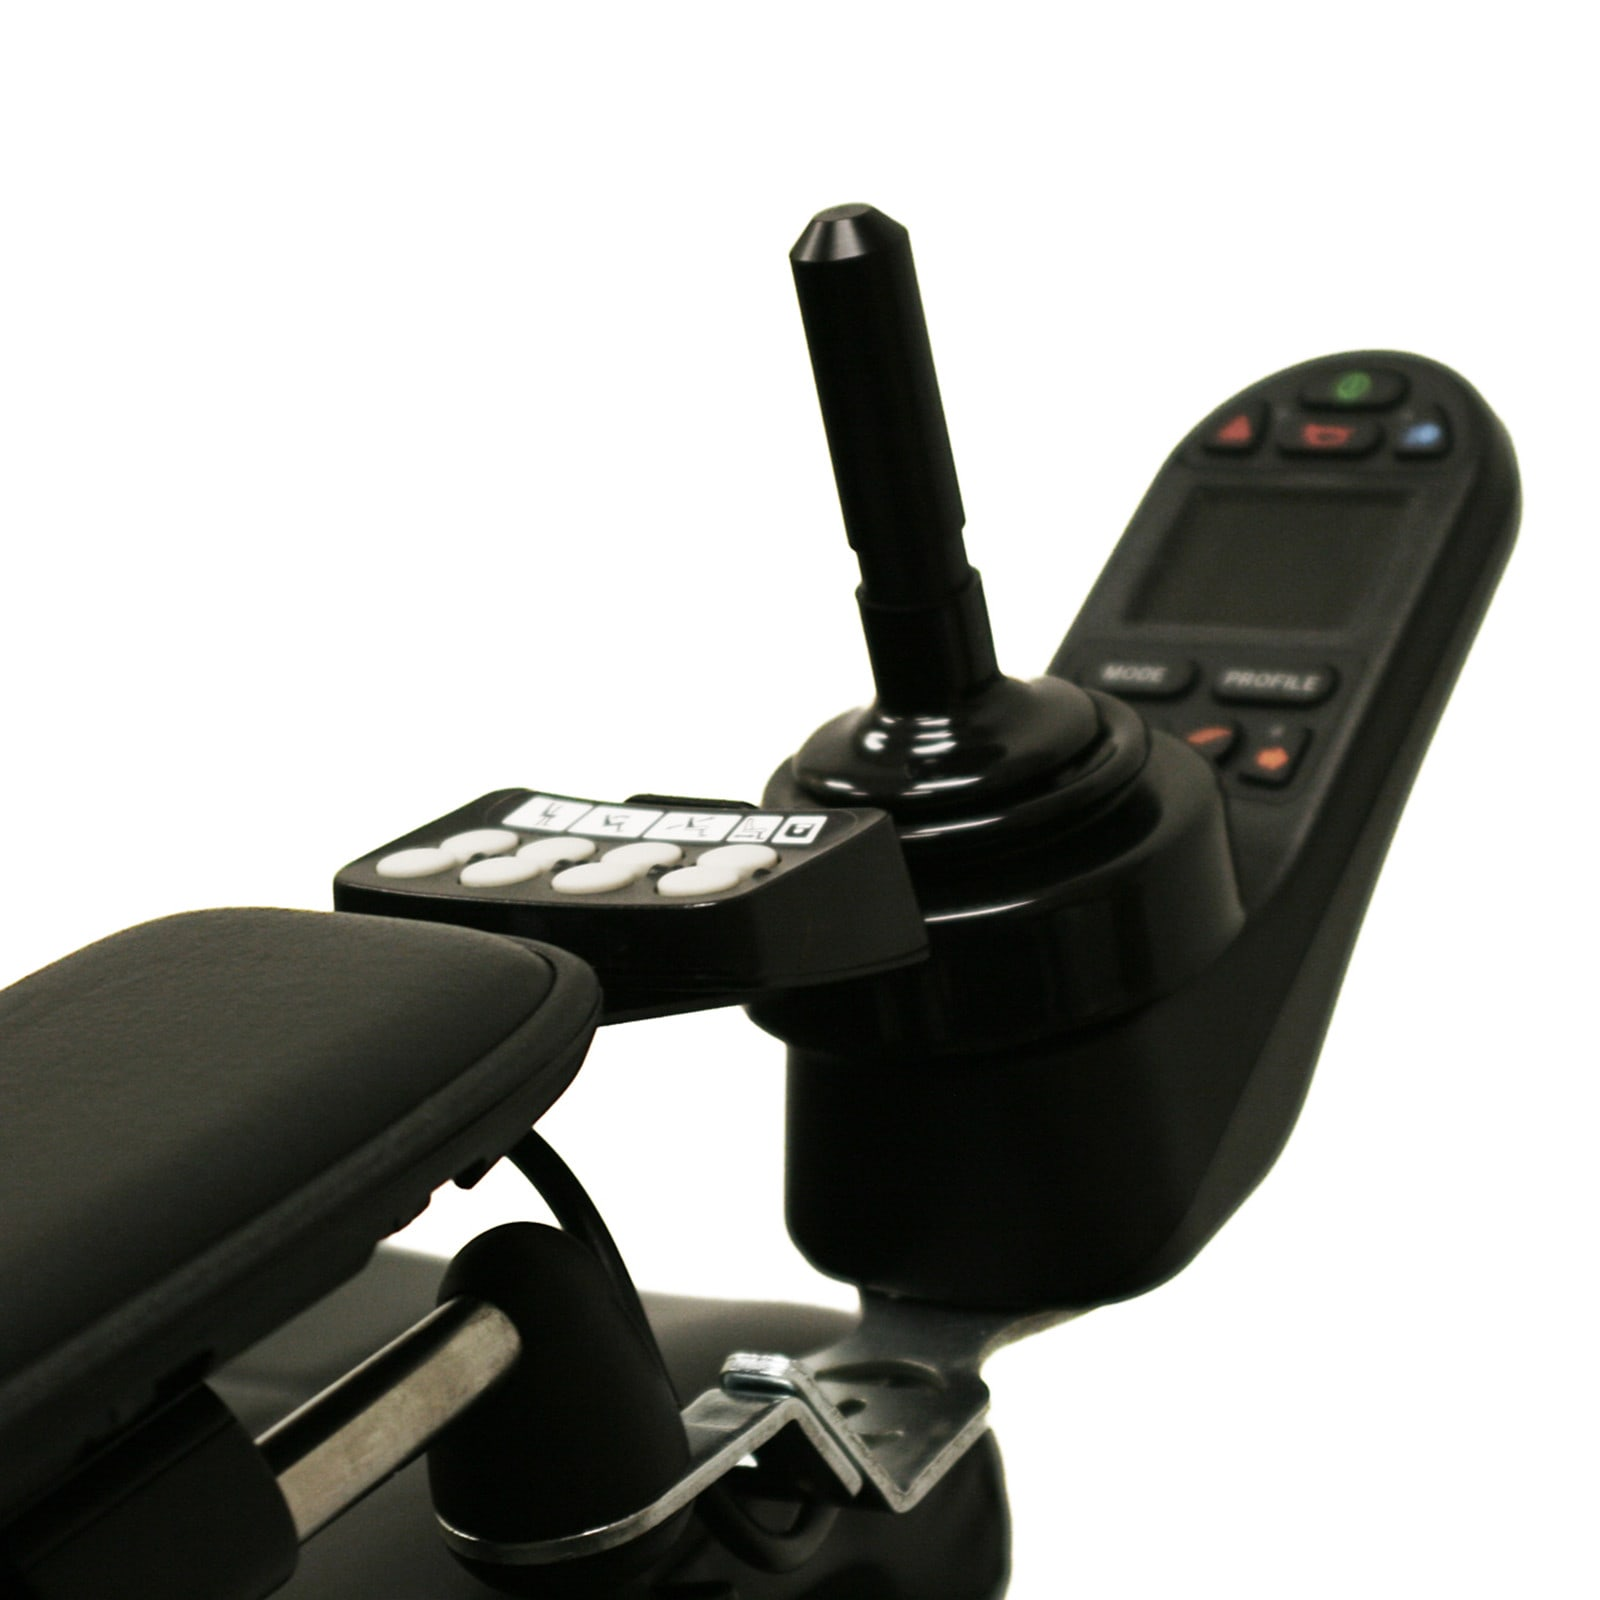 Joystick Side Detail